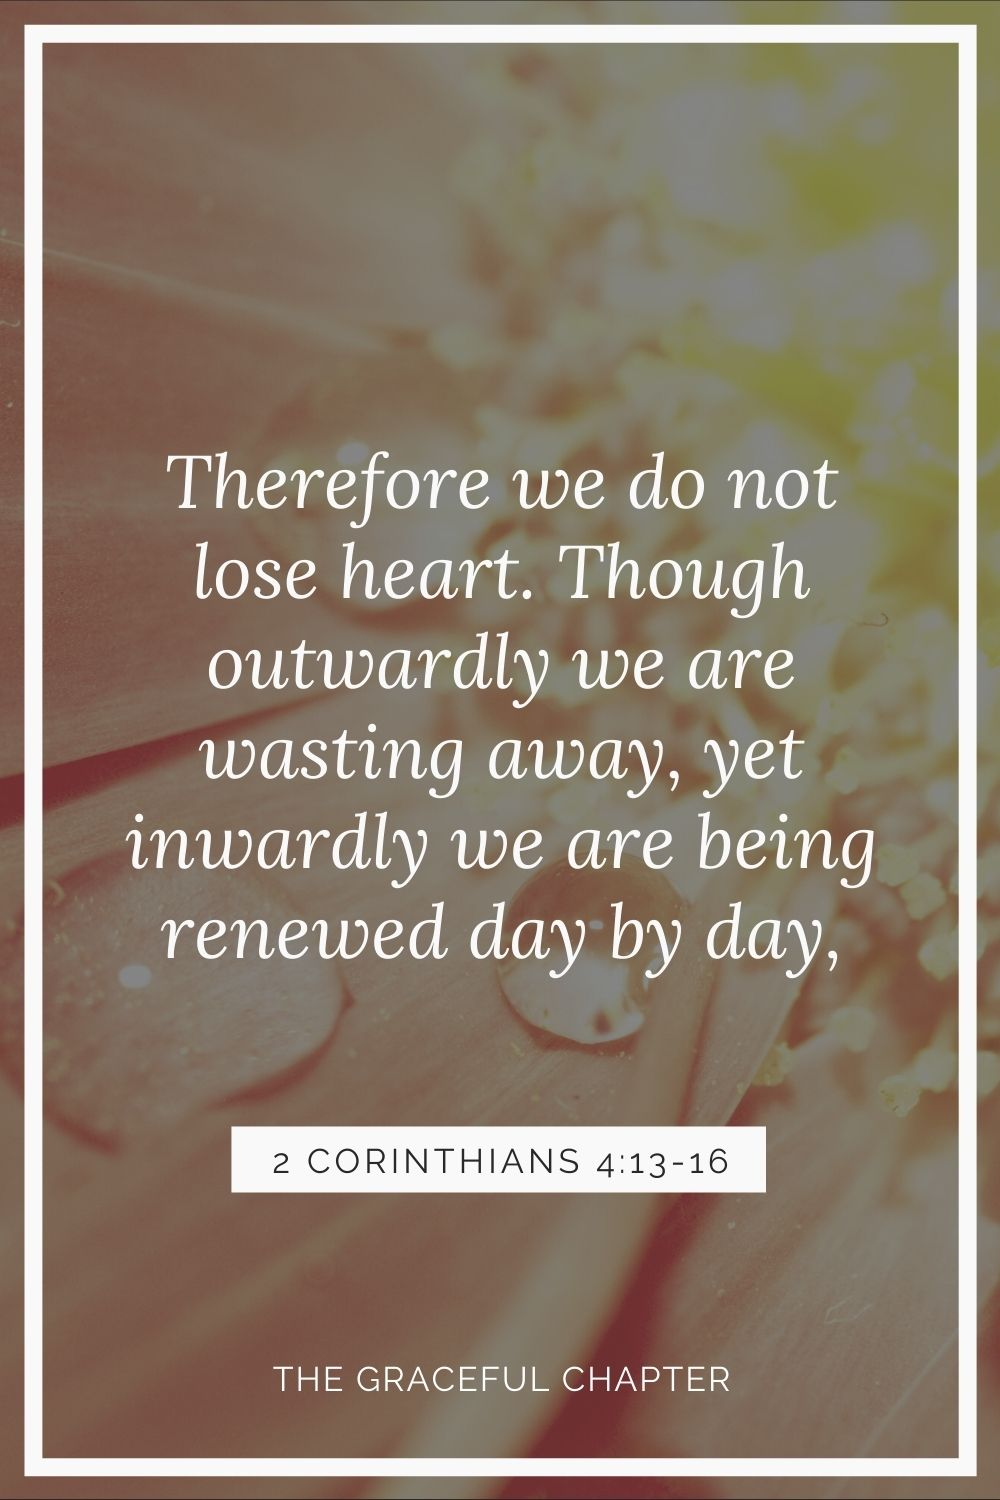 Therefore we do not lose heart. Though outwardly we are wasting away, yet inwardly we are being renewed day by day 2 Corinthians 4:16